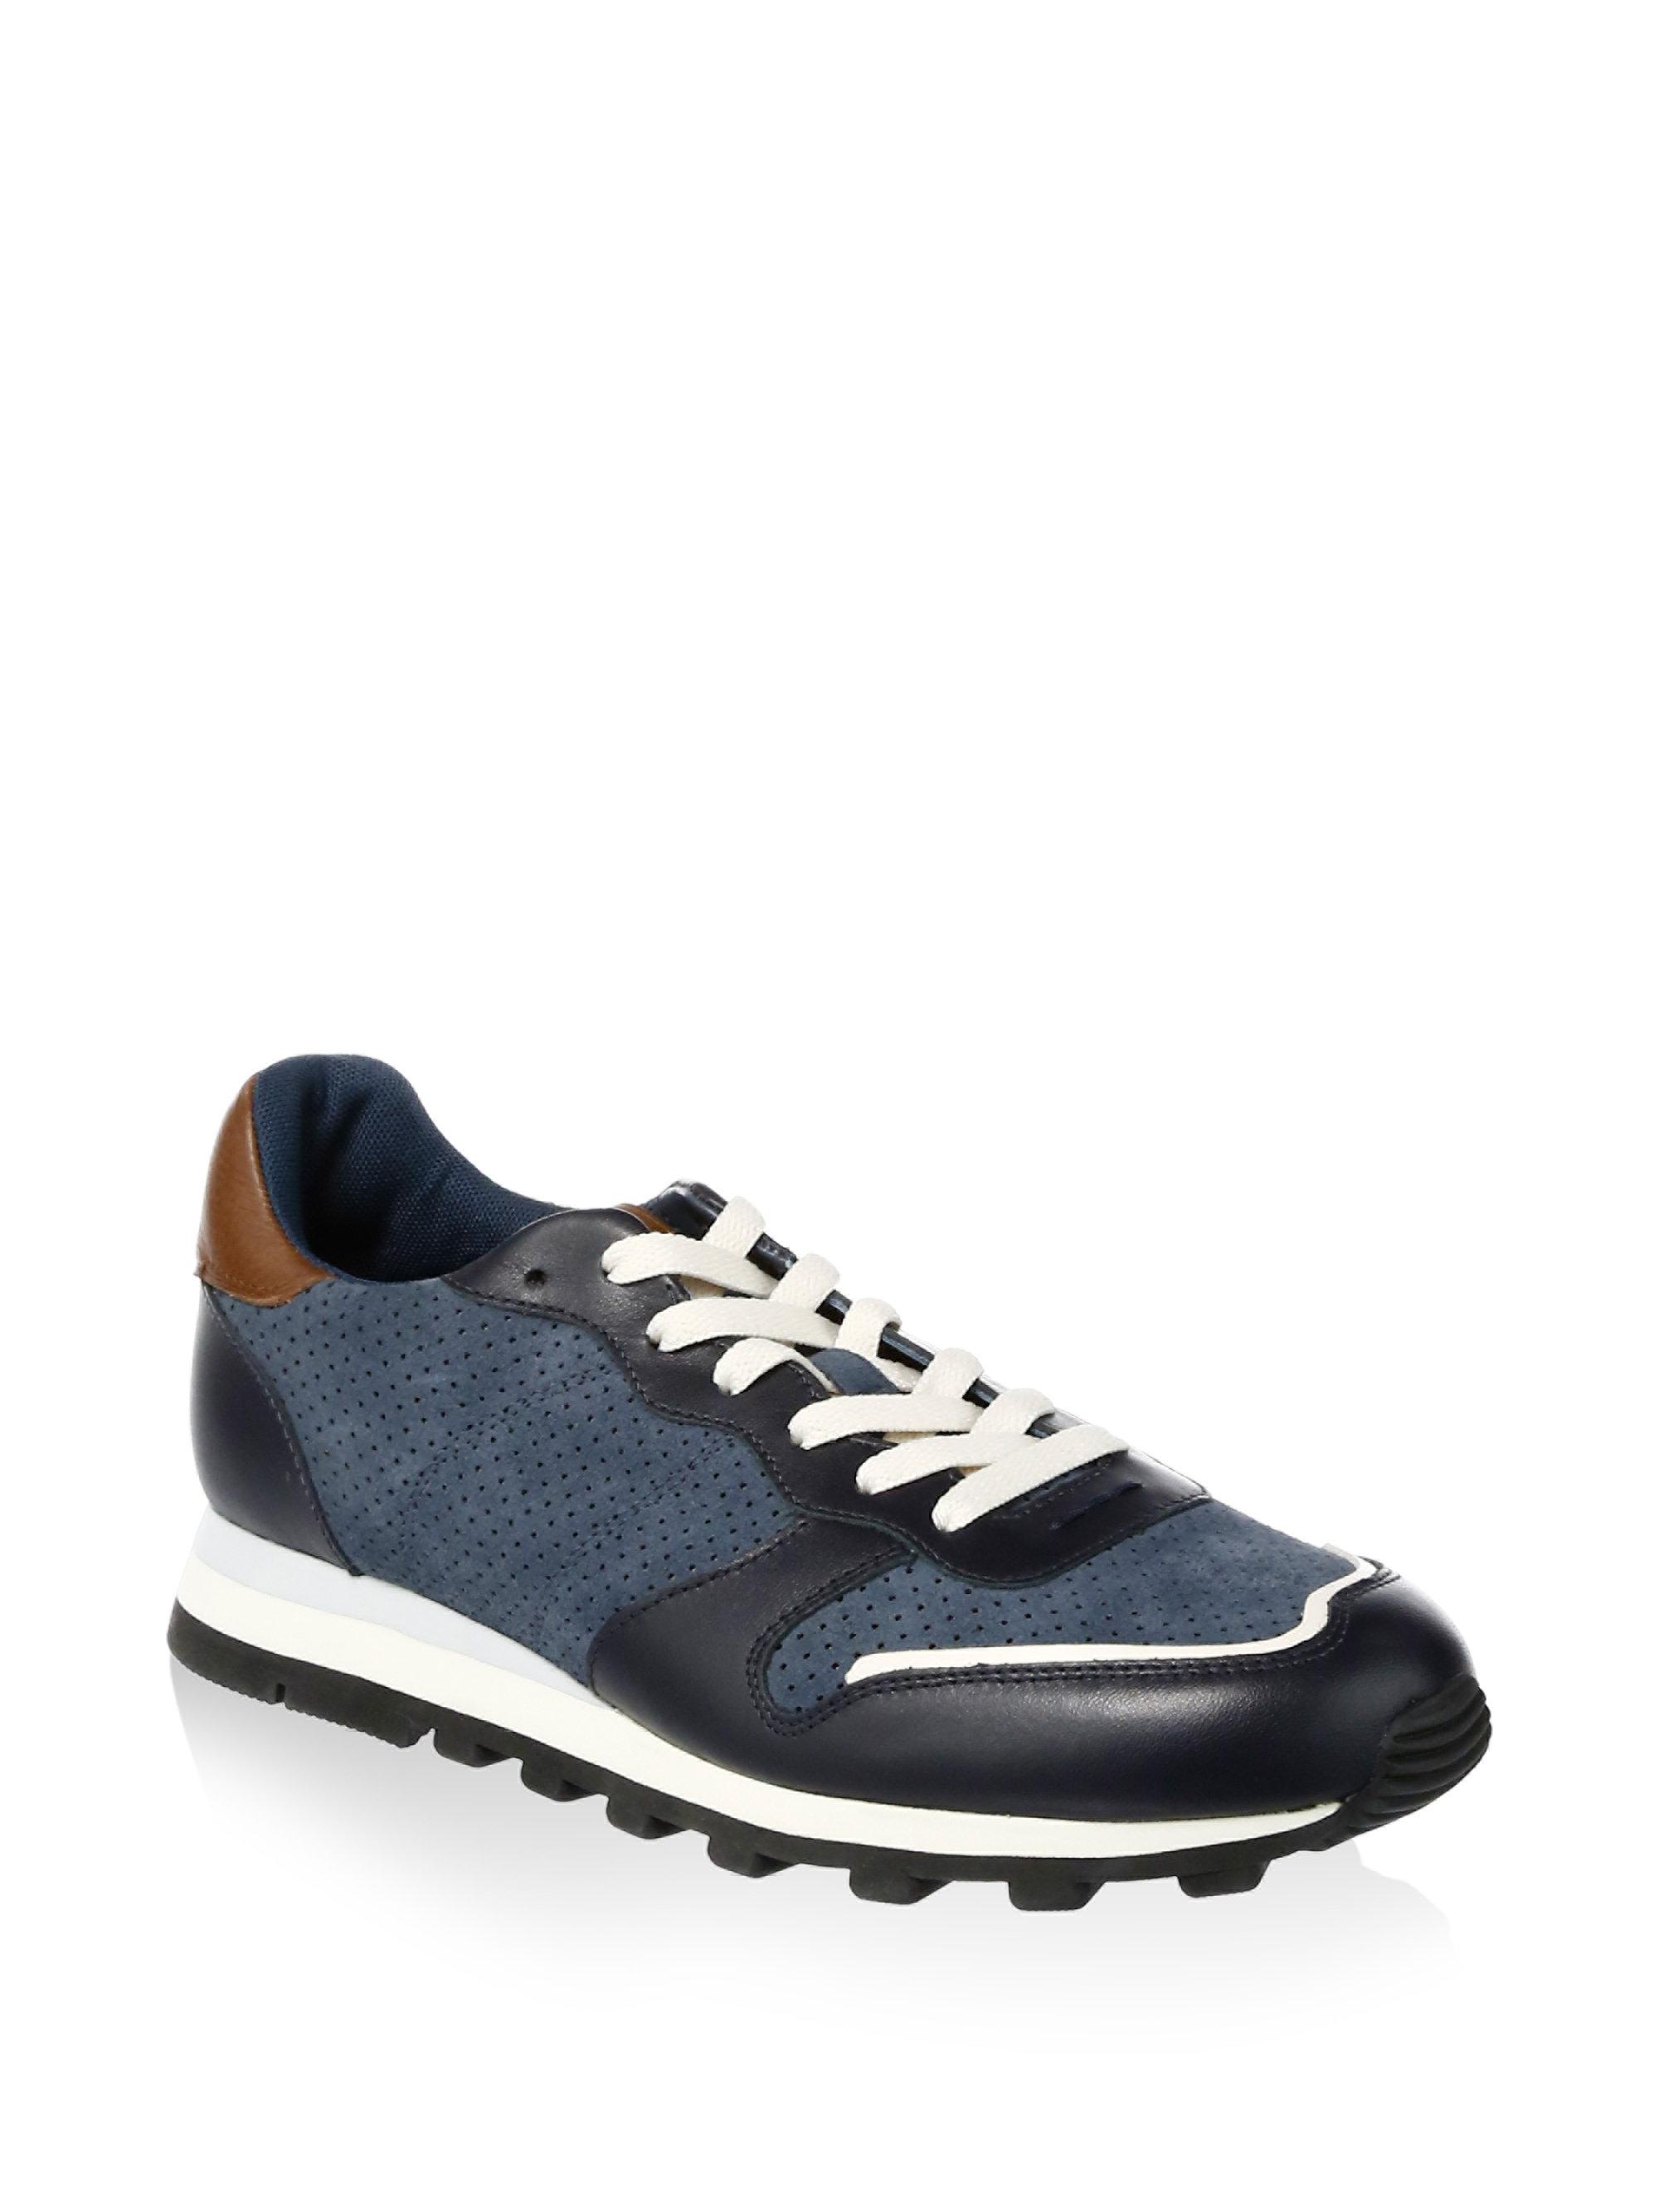 Coach Perforated Leather Trim Running Sneakers hKLv2vx